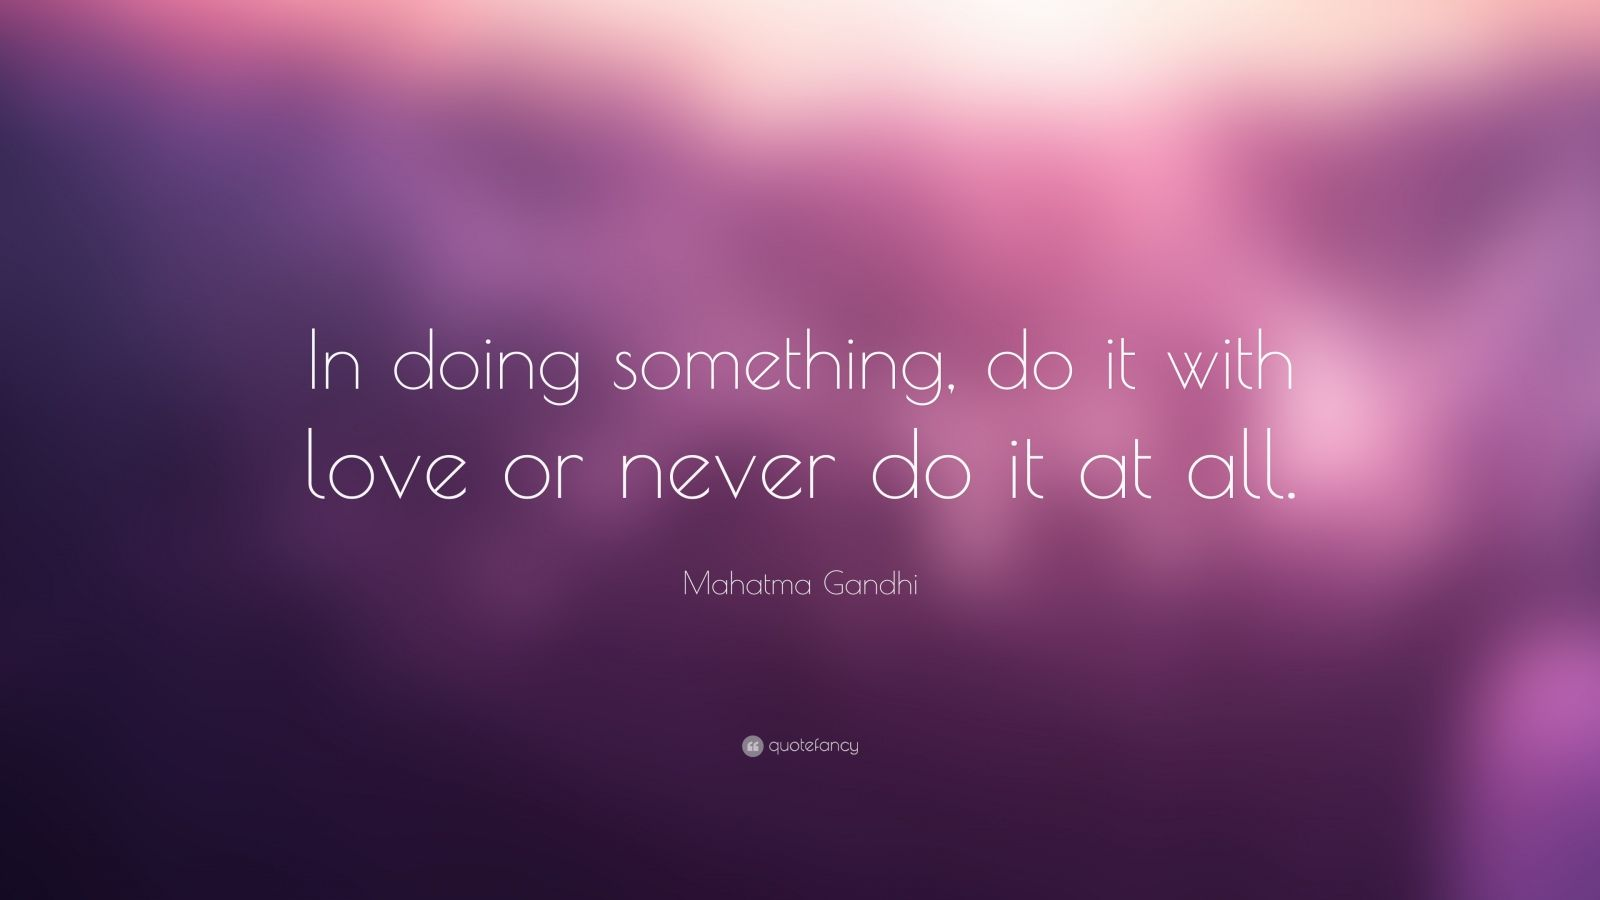 Quotes By Gandhi About Love : Mahatma gandhi quote in doing something do it with love